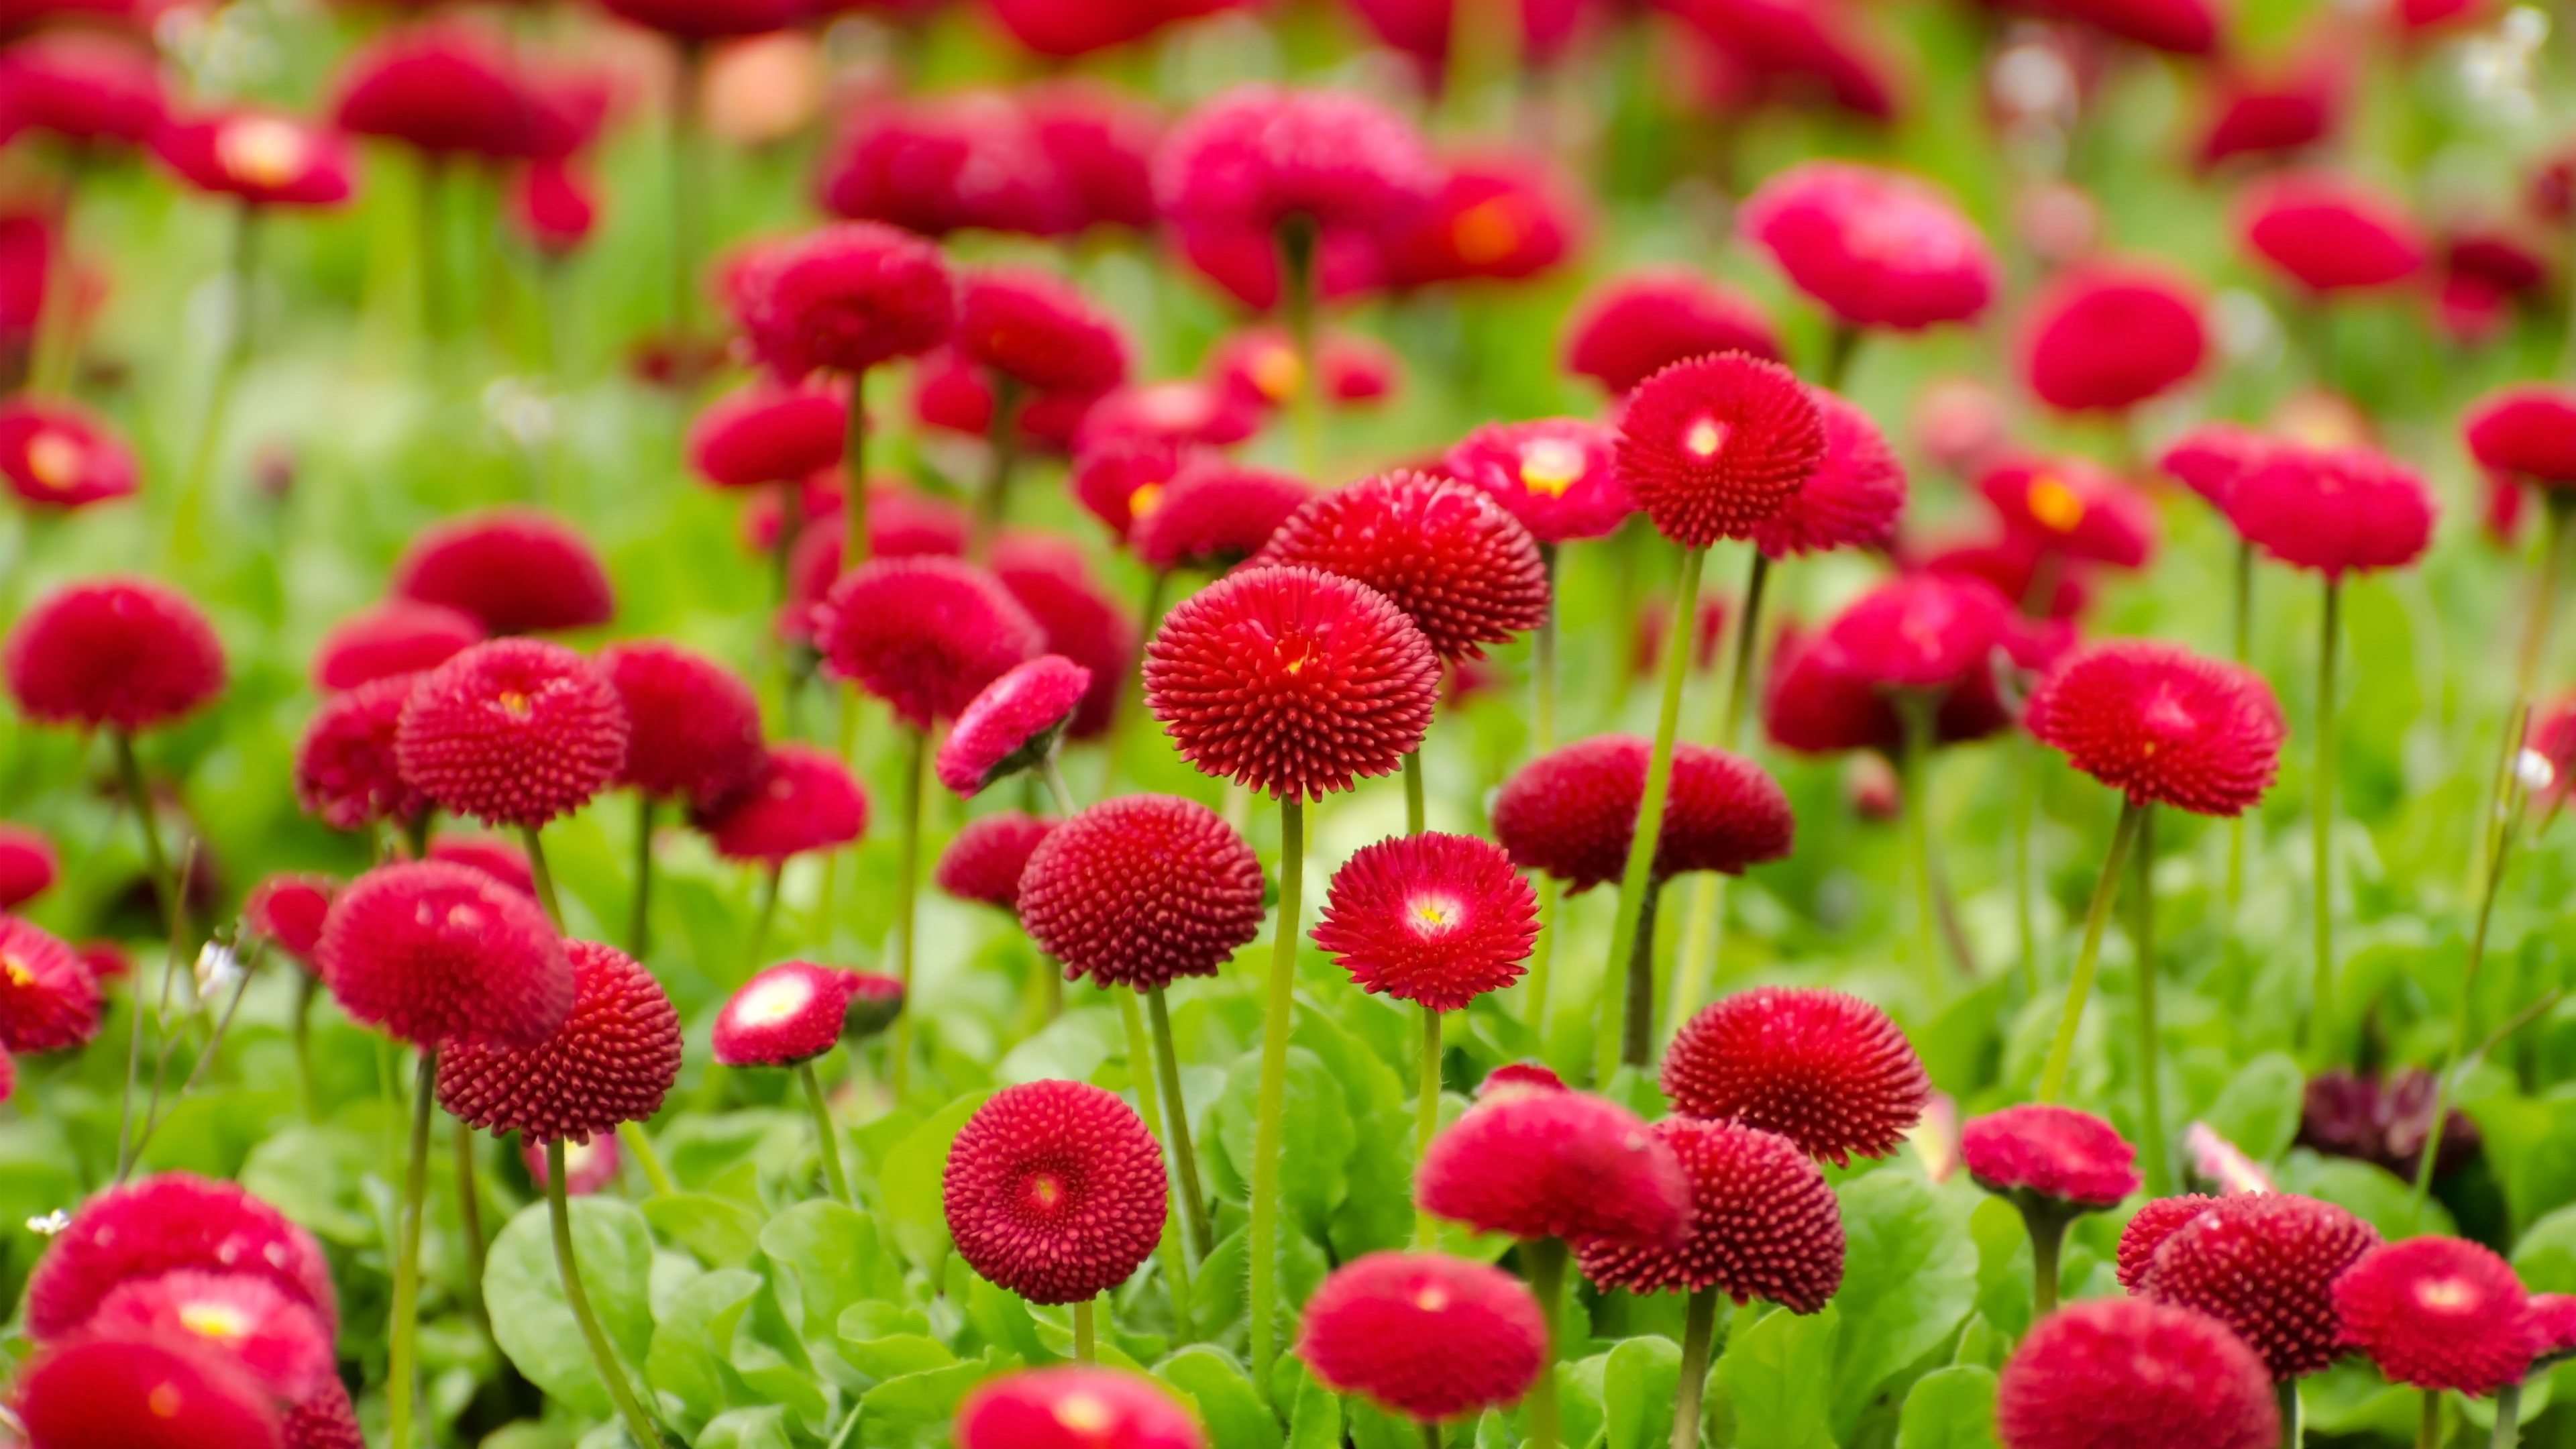 red flowers wallpaper wallpapers for free download about ,, Beautiful flower